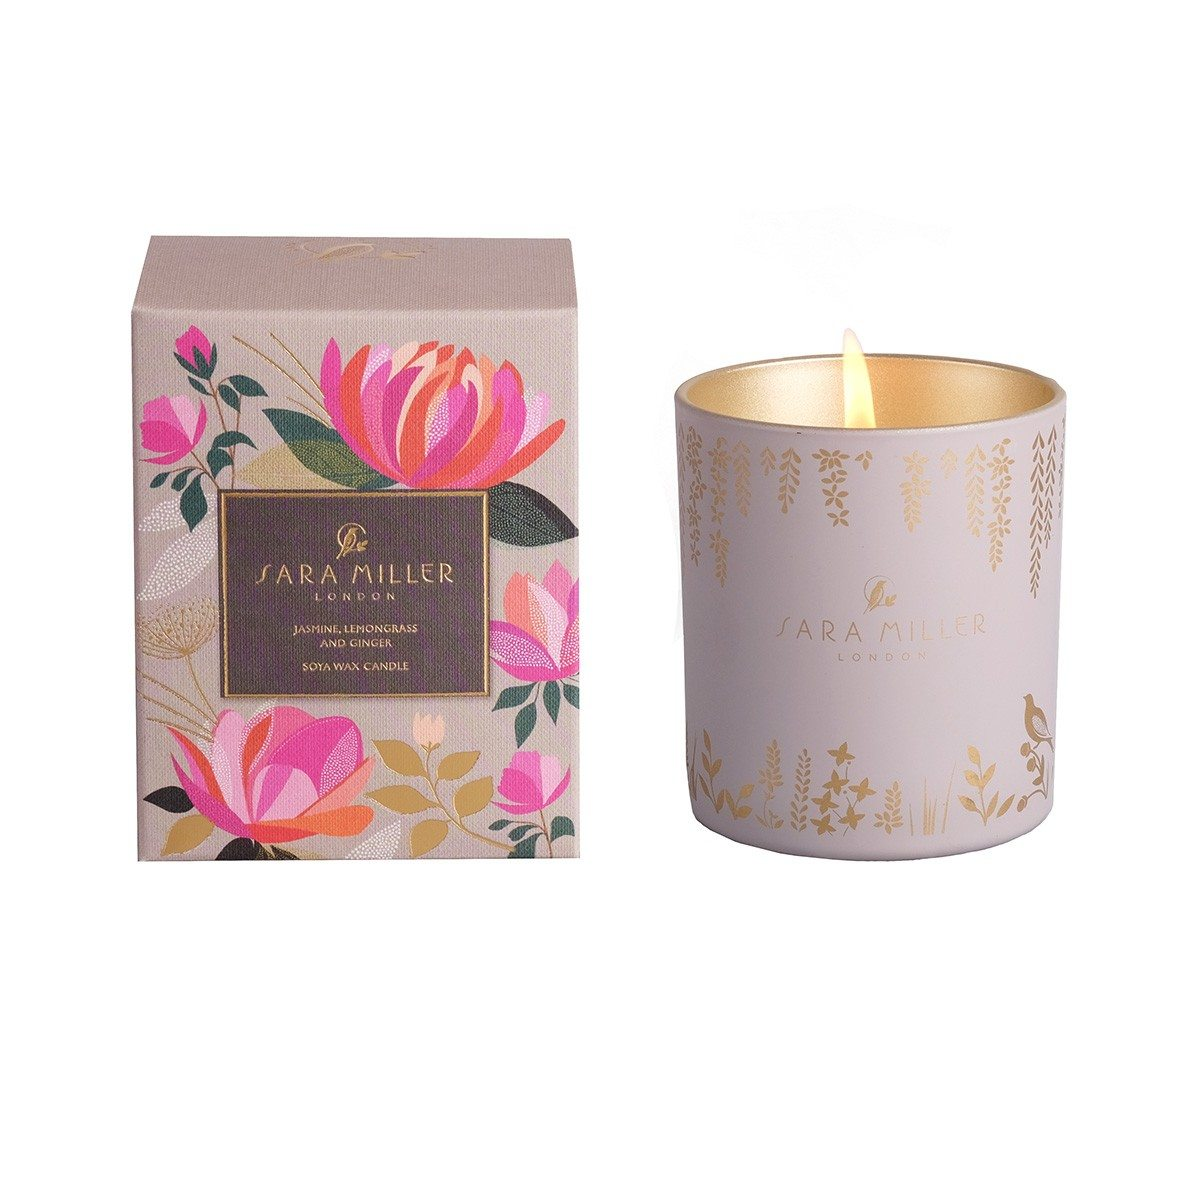 Soy Wax Candles - 240g - Jasmine, Lemongrass & Ginger